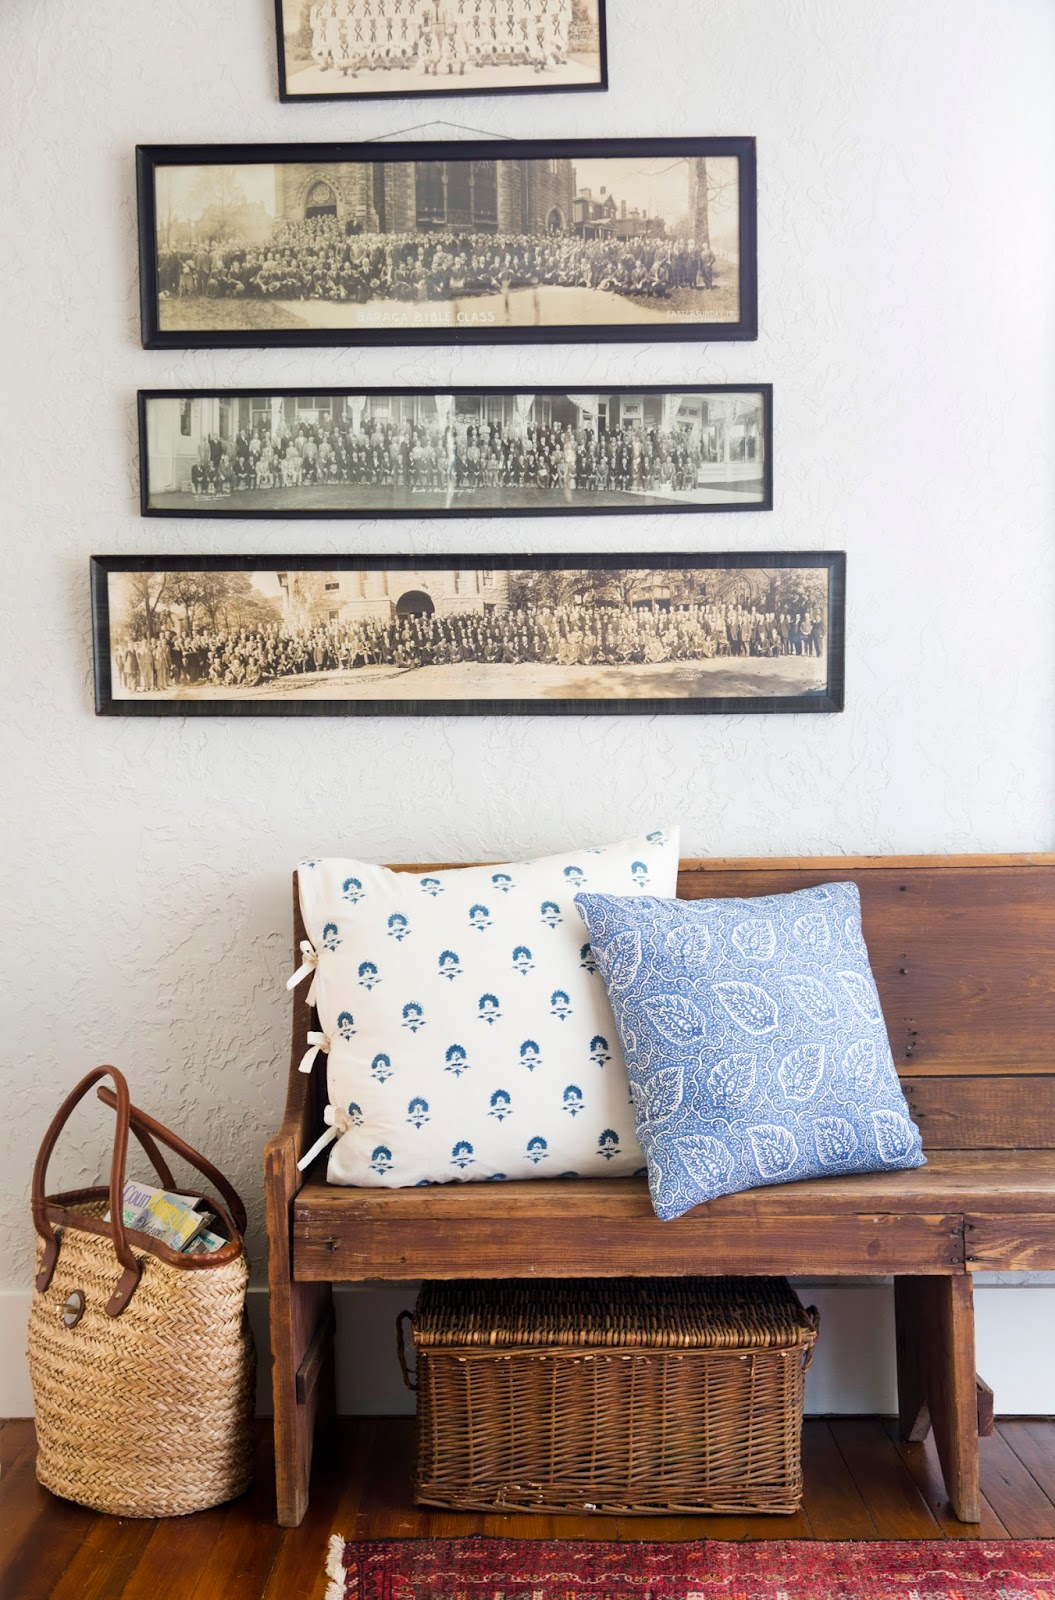 Charming cottage interior with old rustic wood bench, blue pillows, and vintage framed horizontal photographs. Design by Holly Mathis. #cottagestyle #interiordesign #farmhousedecor #vintagestyle #decoratingideas